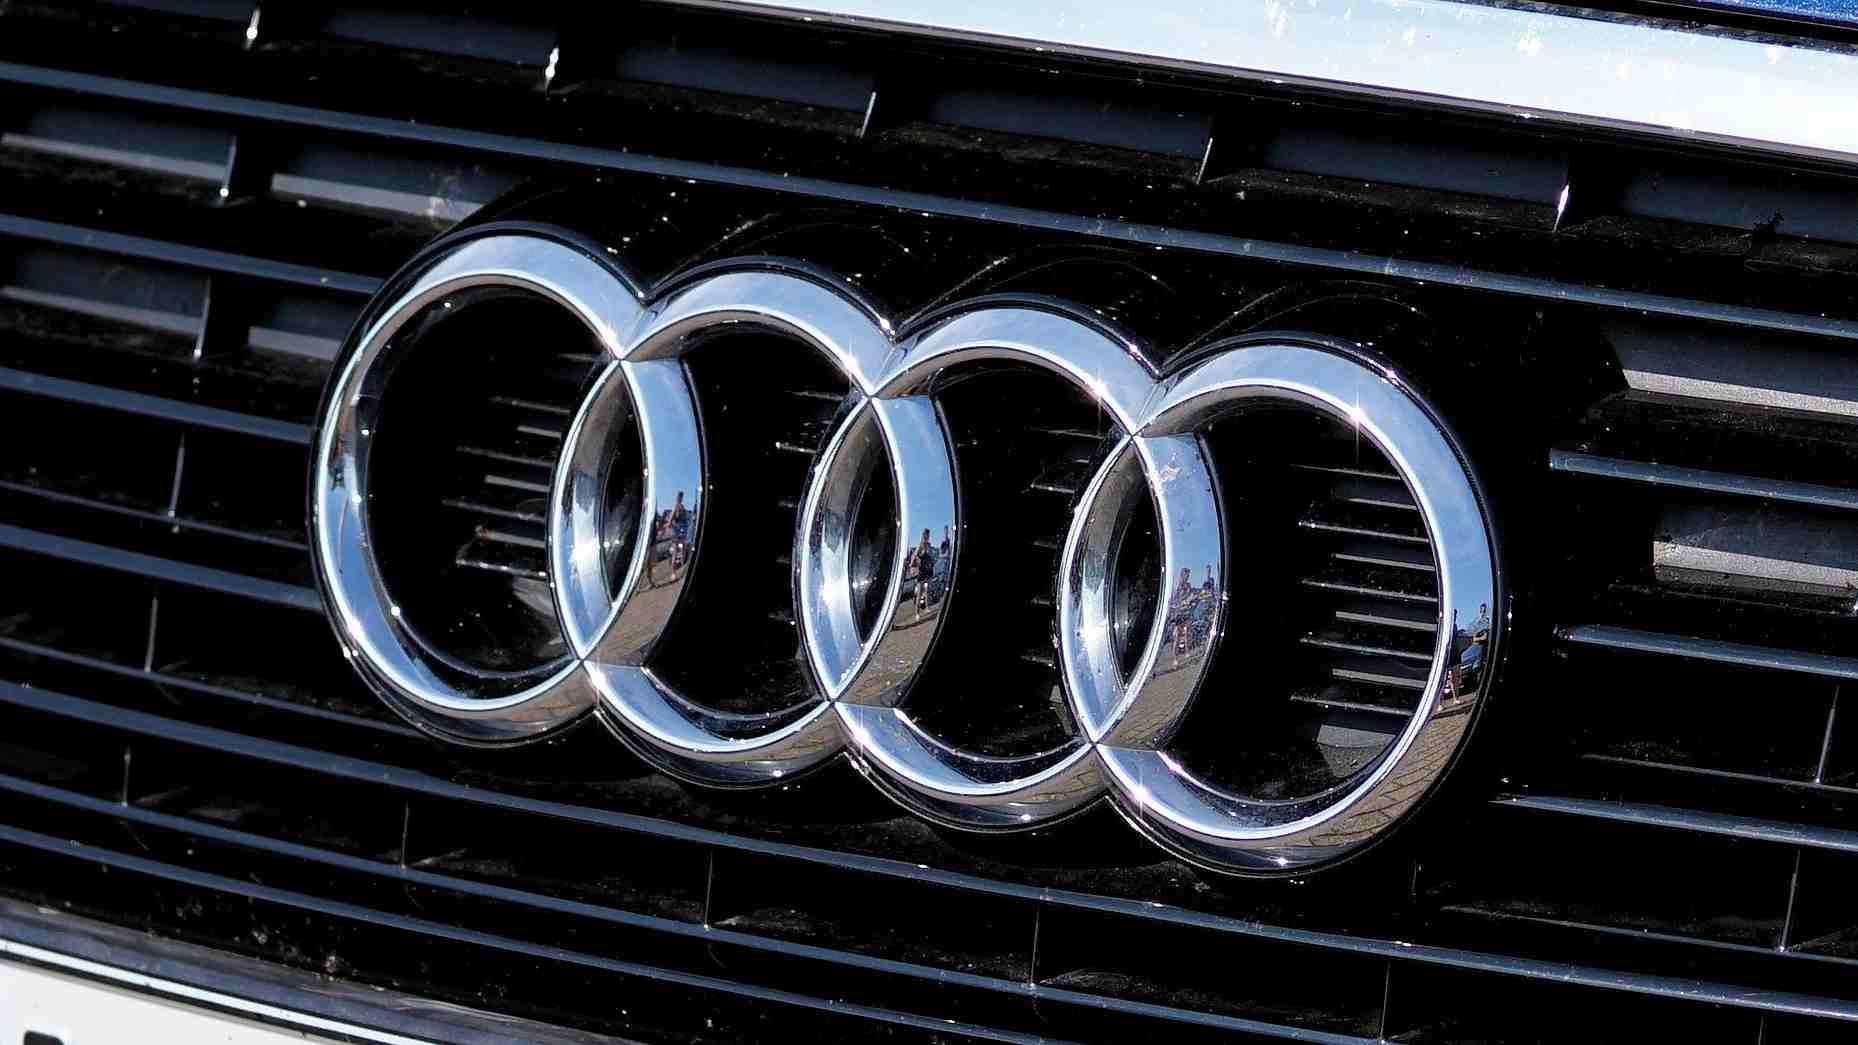 By 2025, Audi will have 20 electric models in its global portfolio. Image: Andreas Lischka via Pixabay